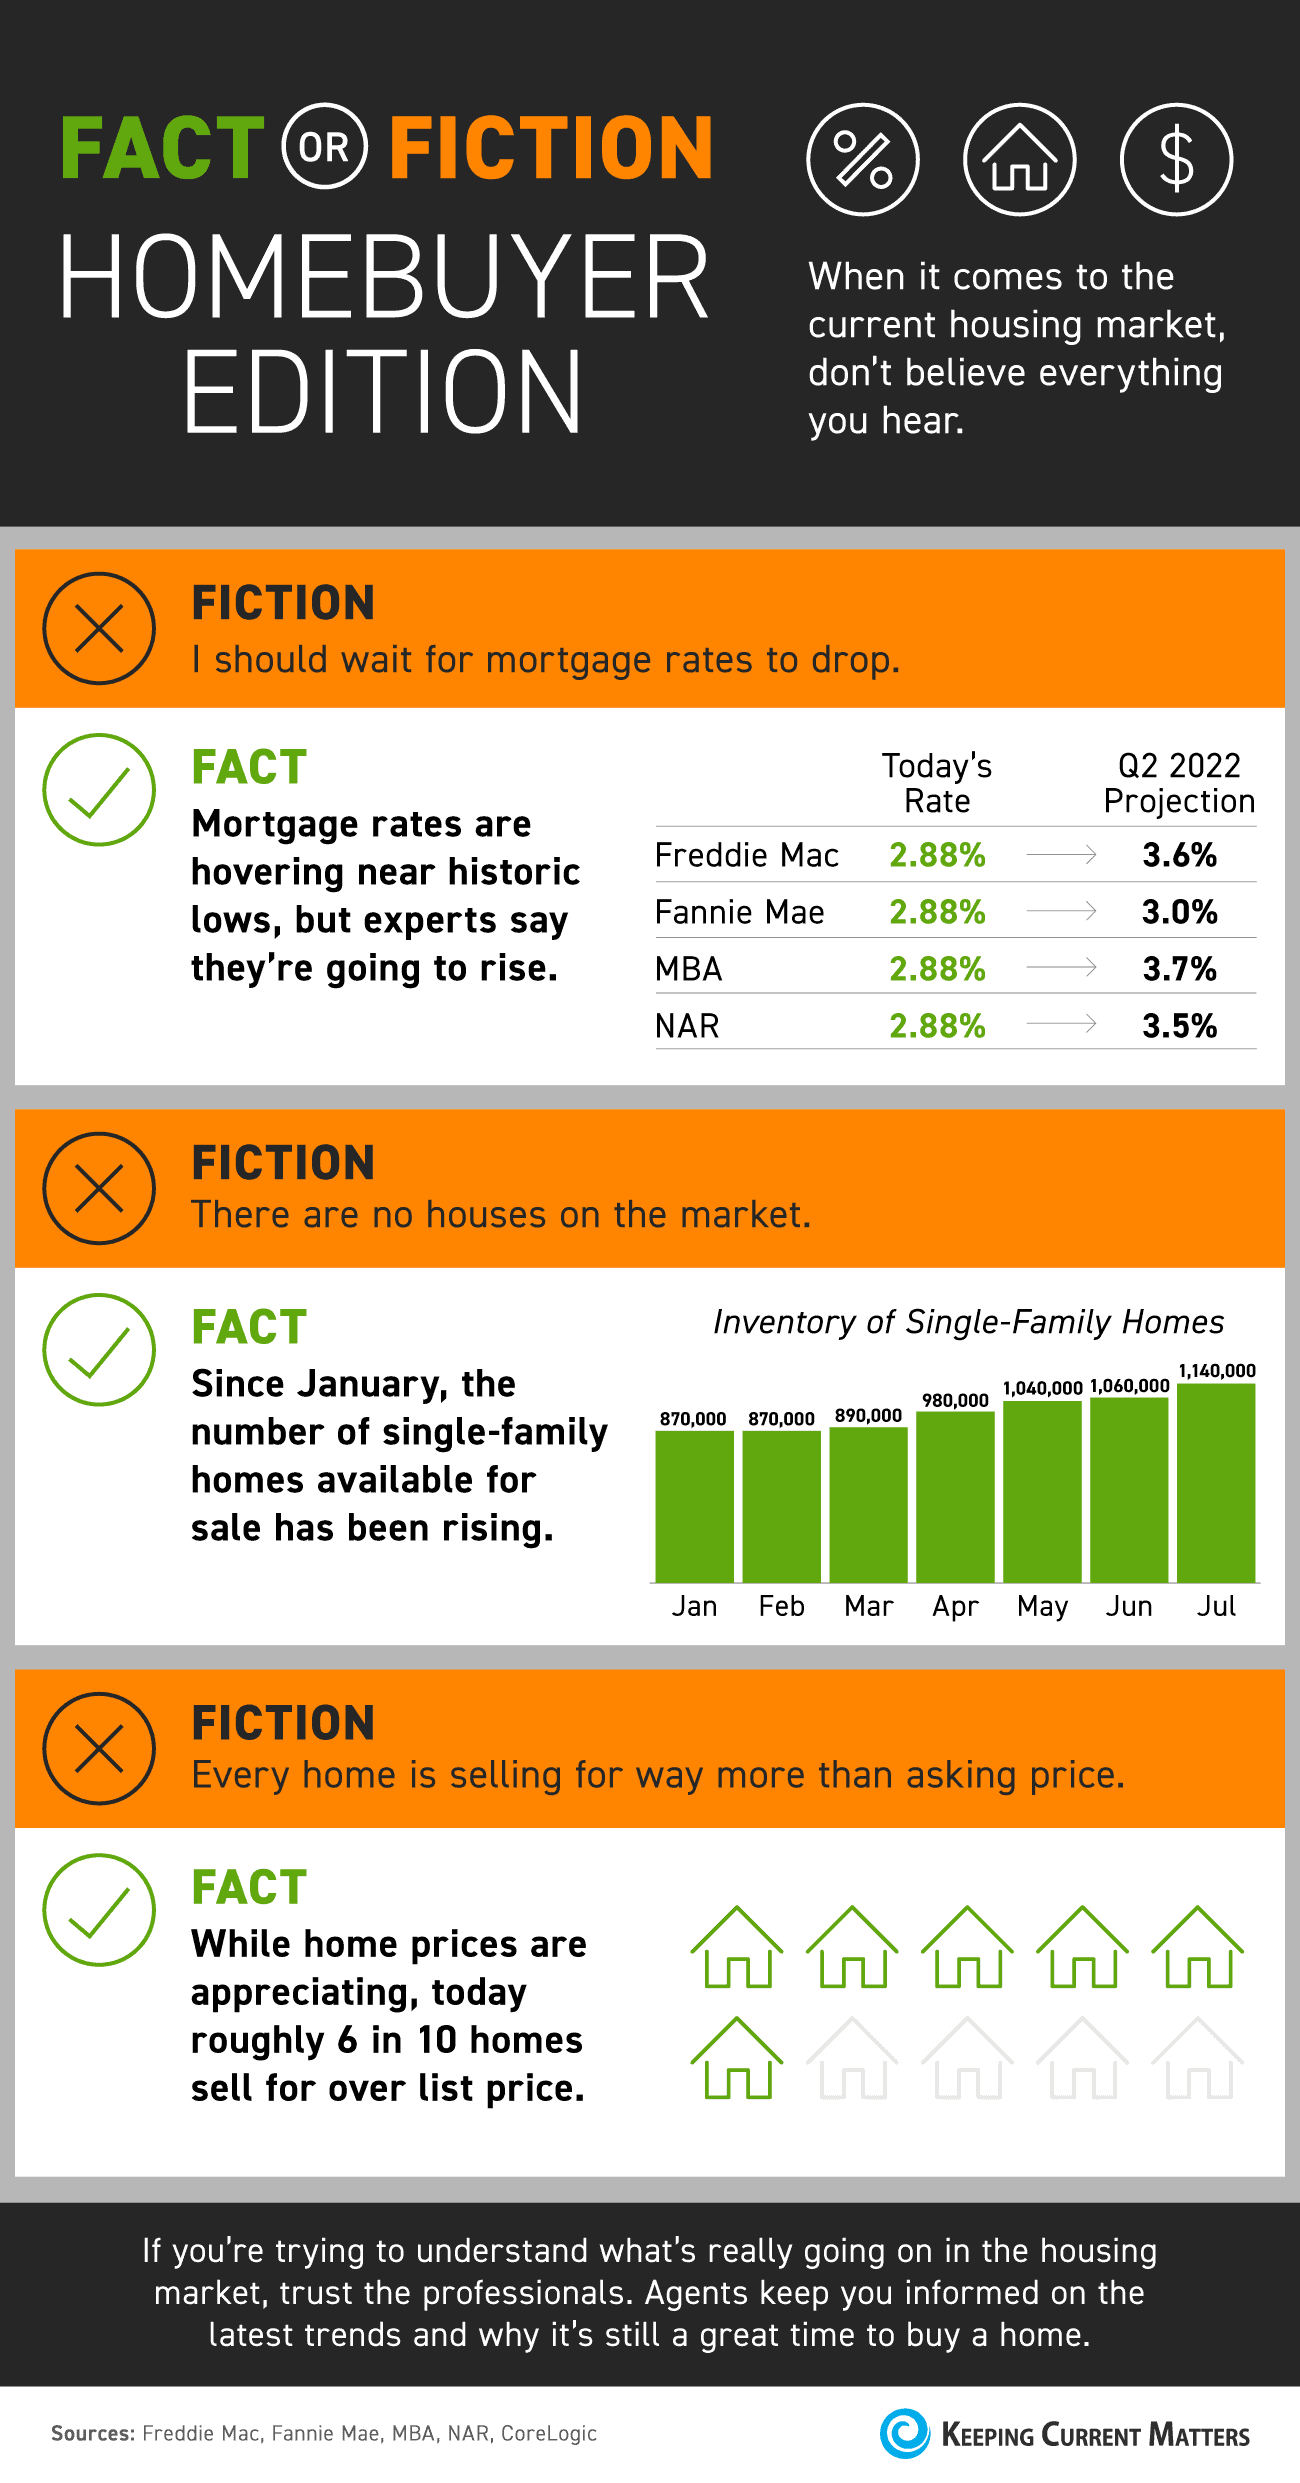 Fact or Fiction: Homebuyer Edition [INFOGRAPHIC]   Keeping Current Matters